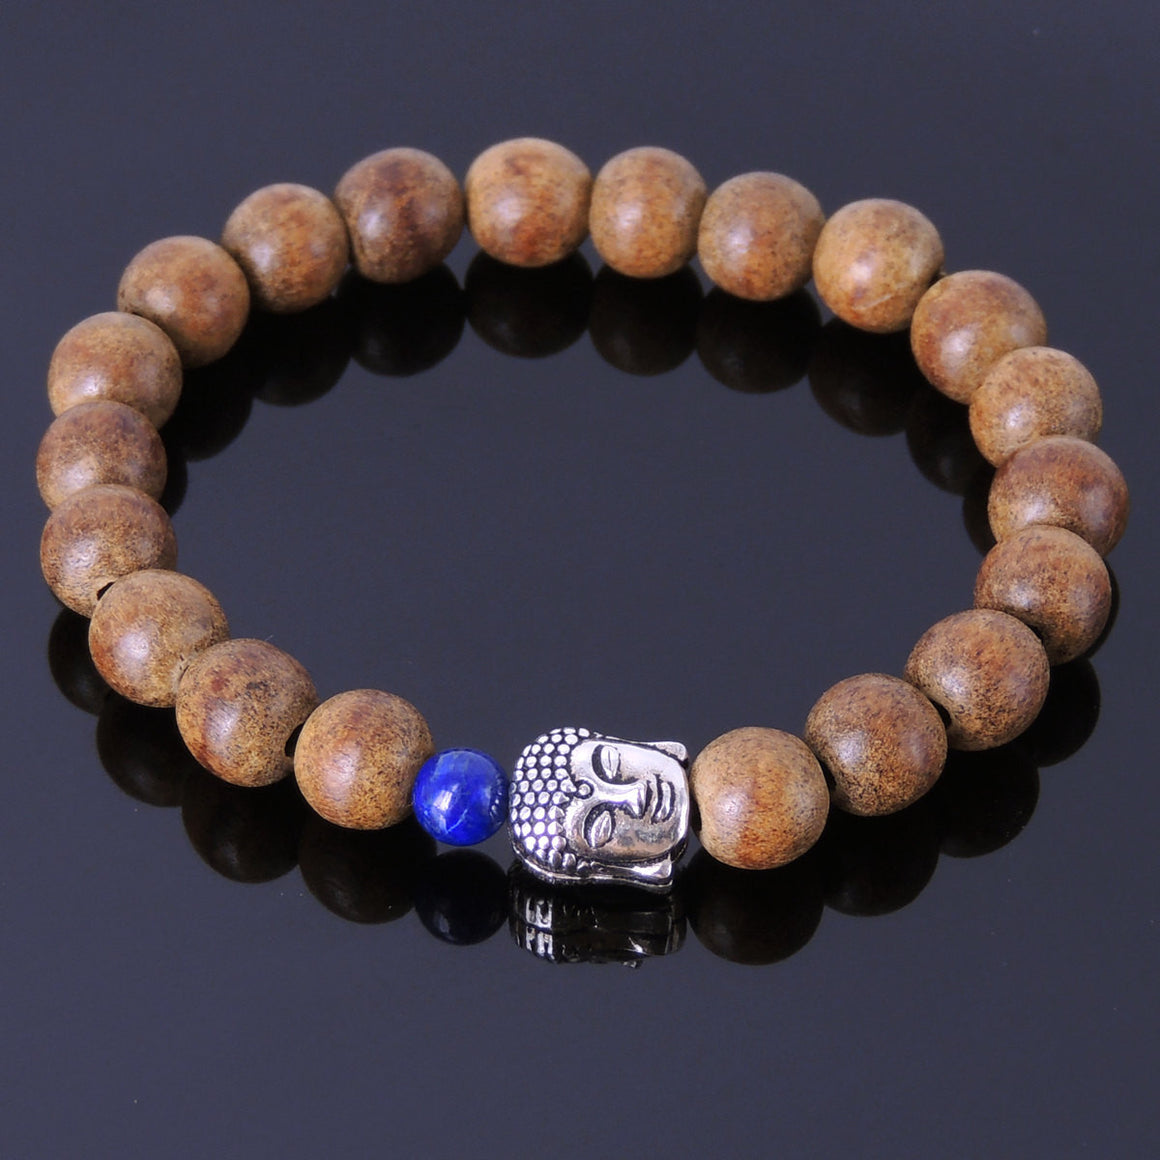 Lapis Lazuli & Agarwood Bracelet for Prayer & Meditation with S925 Sterling Silver Guanyin Buddha Protection Bead - Handmade by Gem & Silver BR215